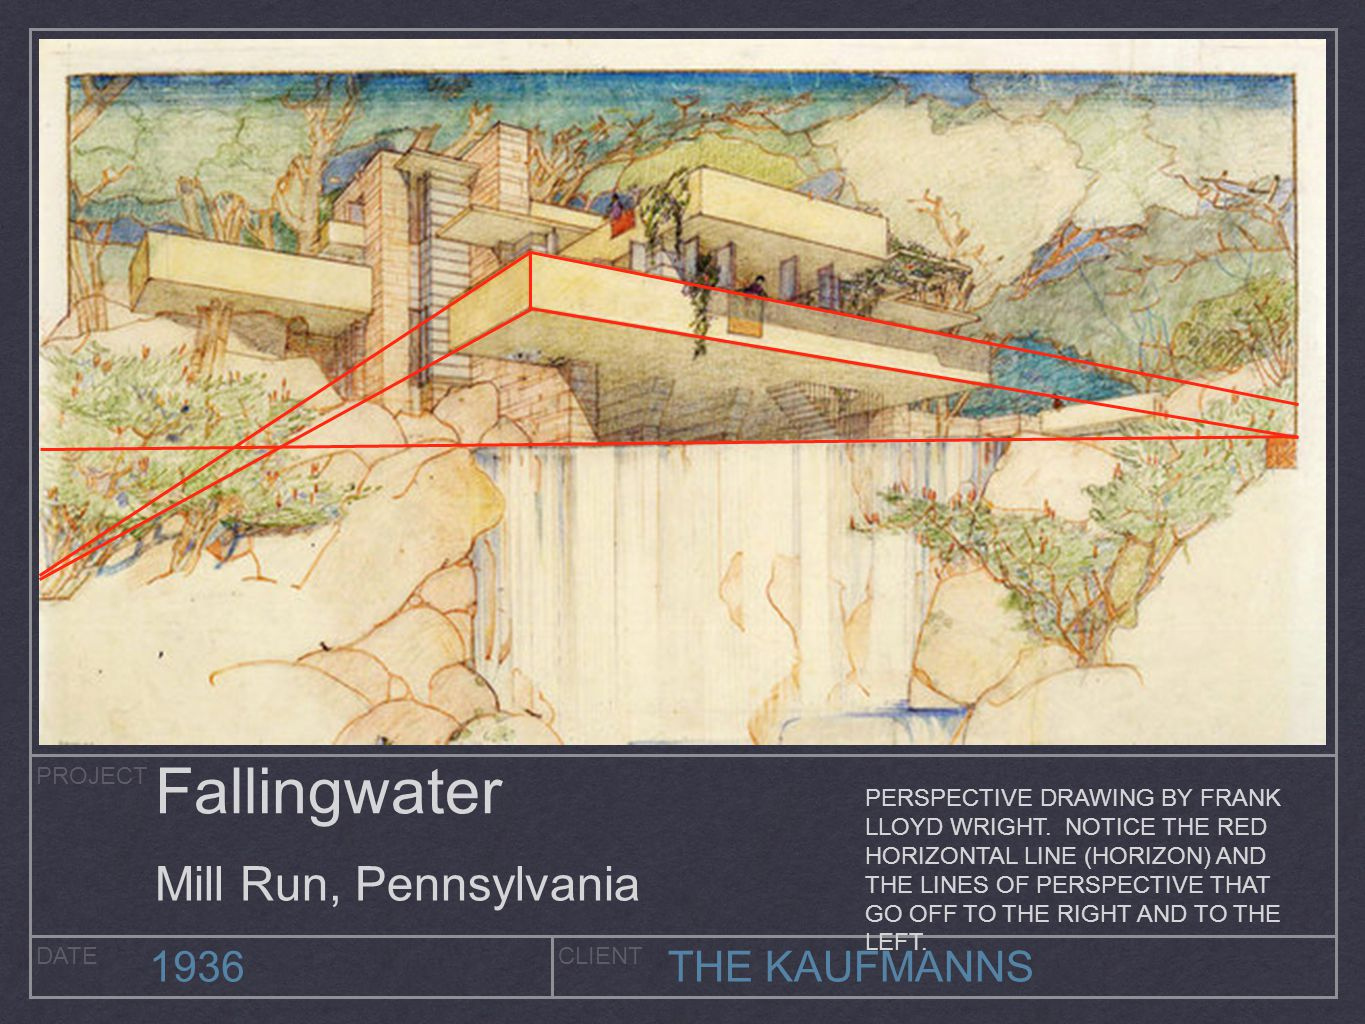 PROJECT DATECLIENT 1936THE KAUFMANNS Fallingwater Mill Run, Pennsylvania PERSPECTIVE DRAWING BY FRANK LLOYD WRIGHT. NOTICE THE RED HORIZONTAL LINE (HO